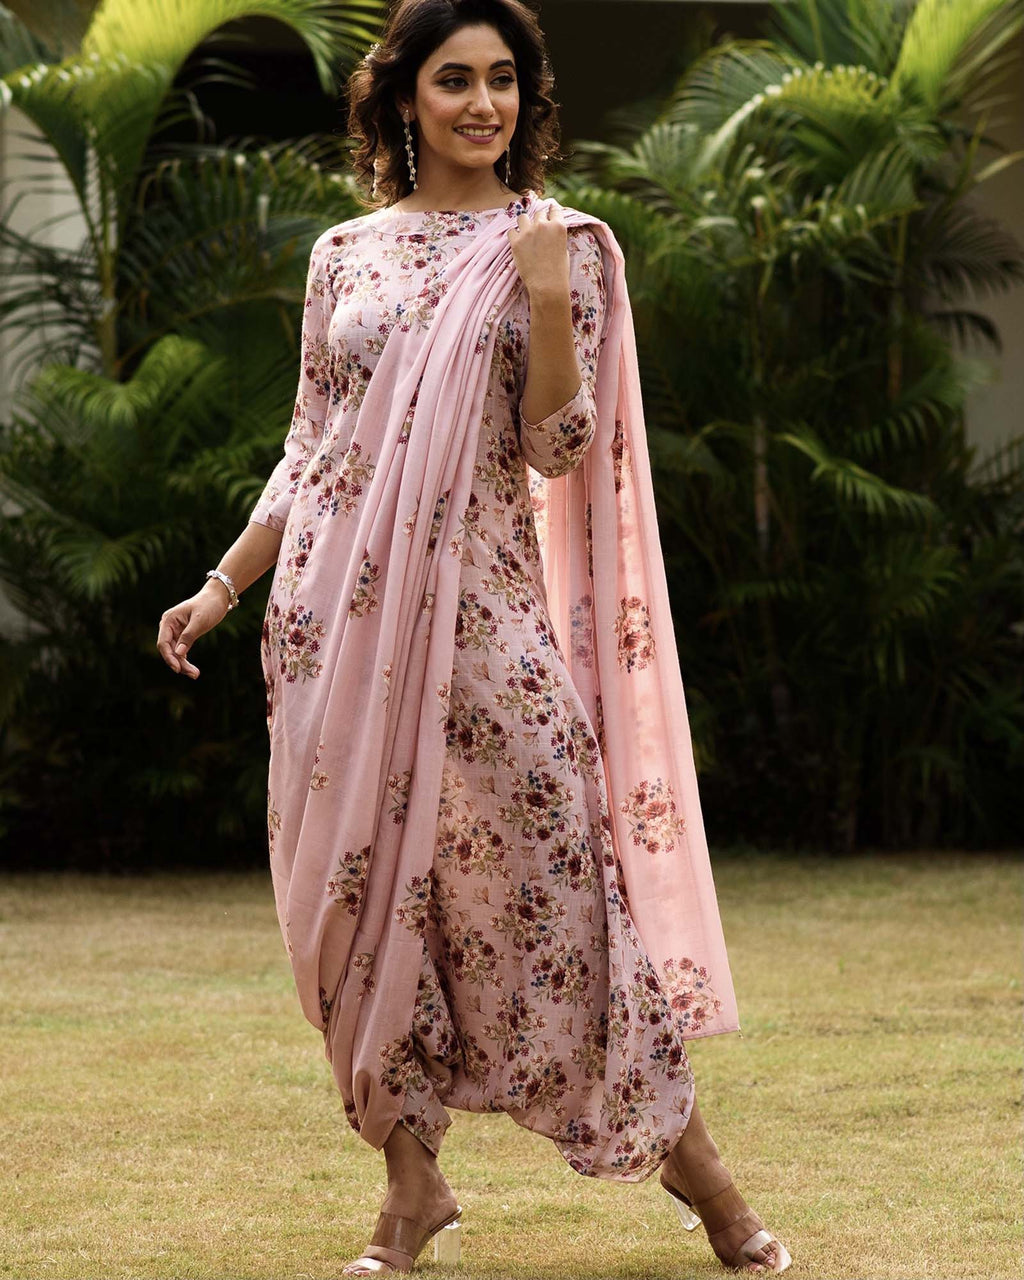 Carnation Pink Dhoti Jumpsuit With A Detachable Carnation Pink Pallu - Riviera Closet